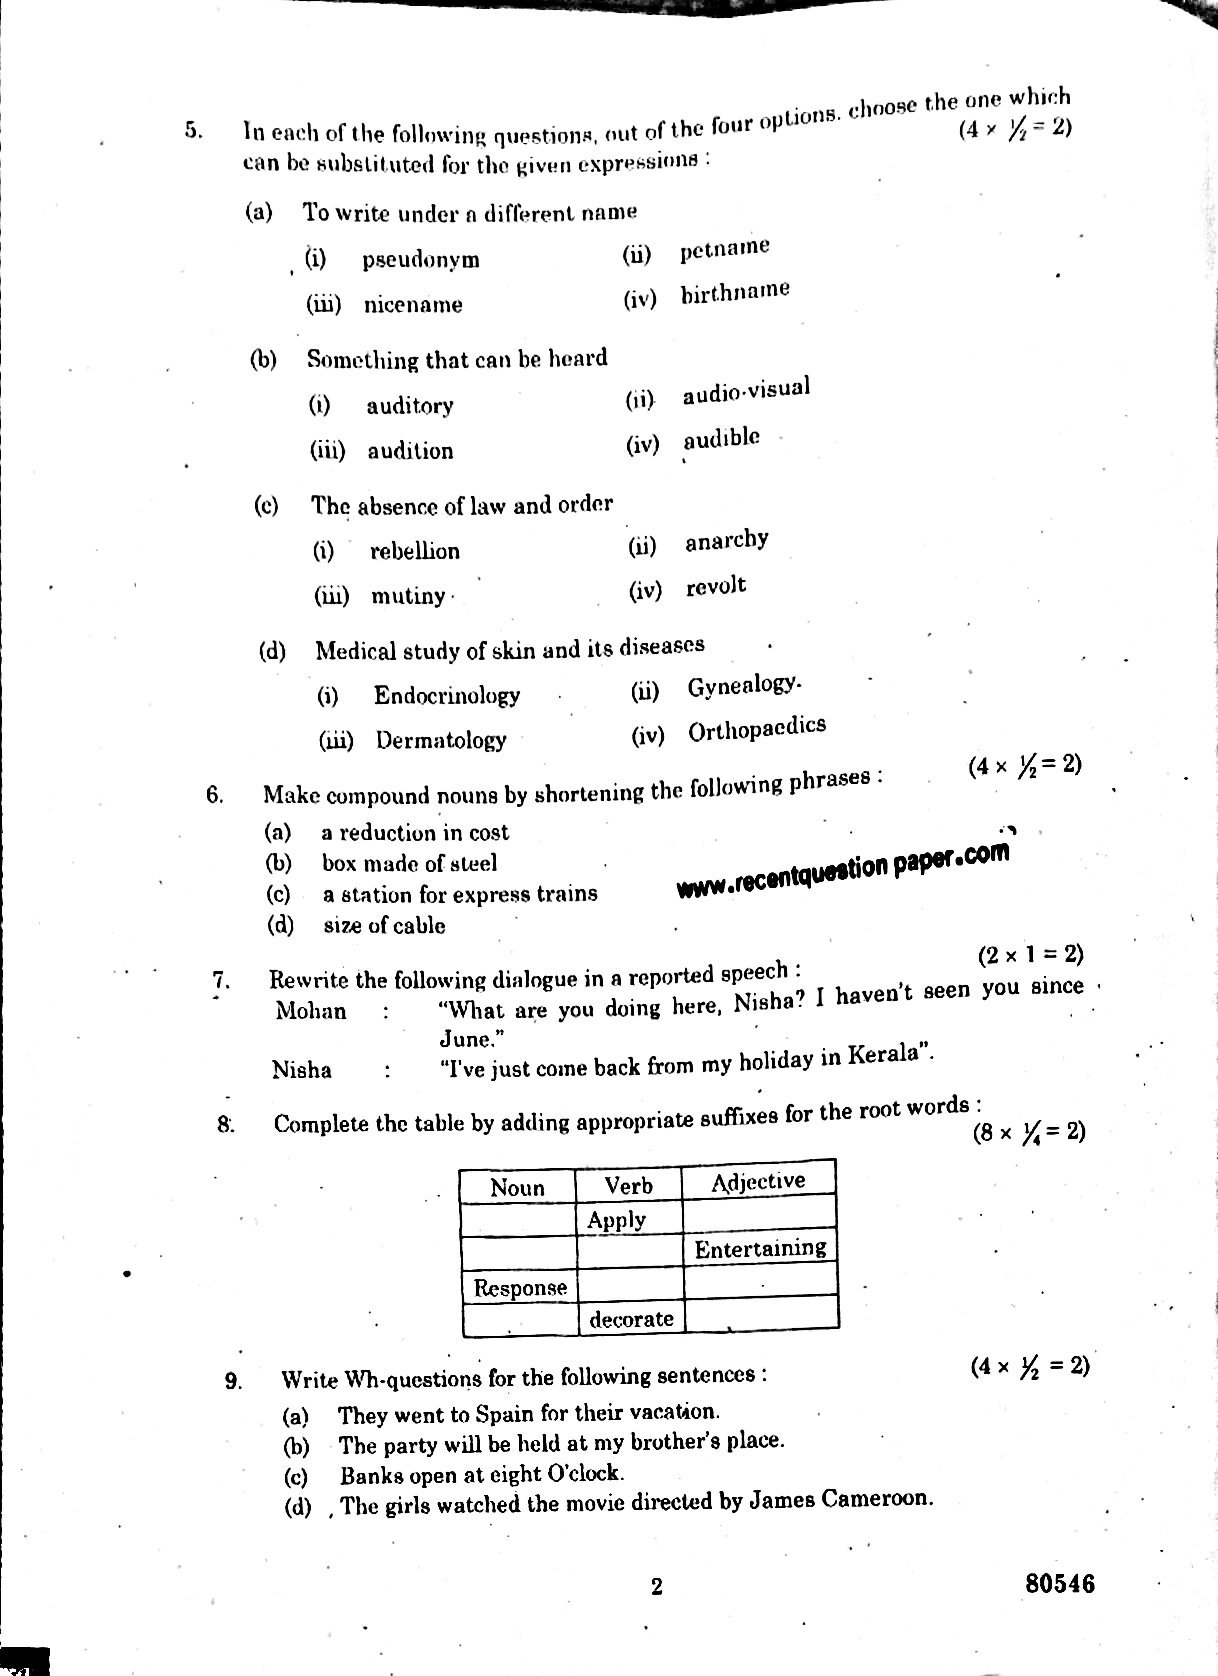 Hs6151 technical english i 1 recent question paper hs6151 technical english i 1 malvernweather Image collections